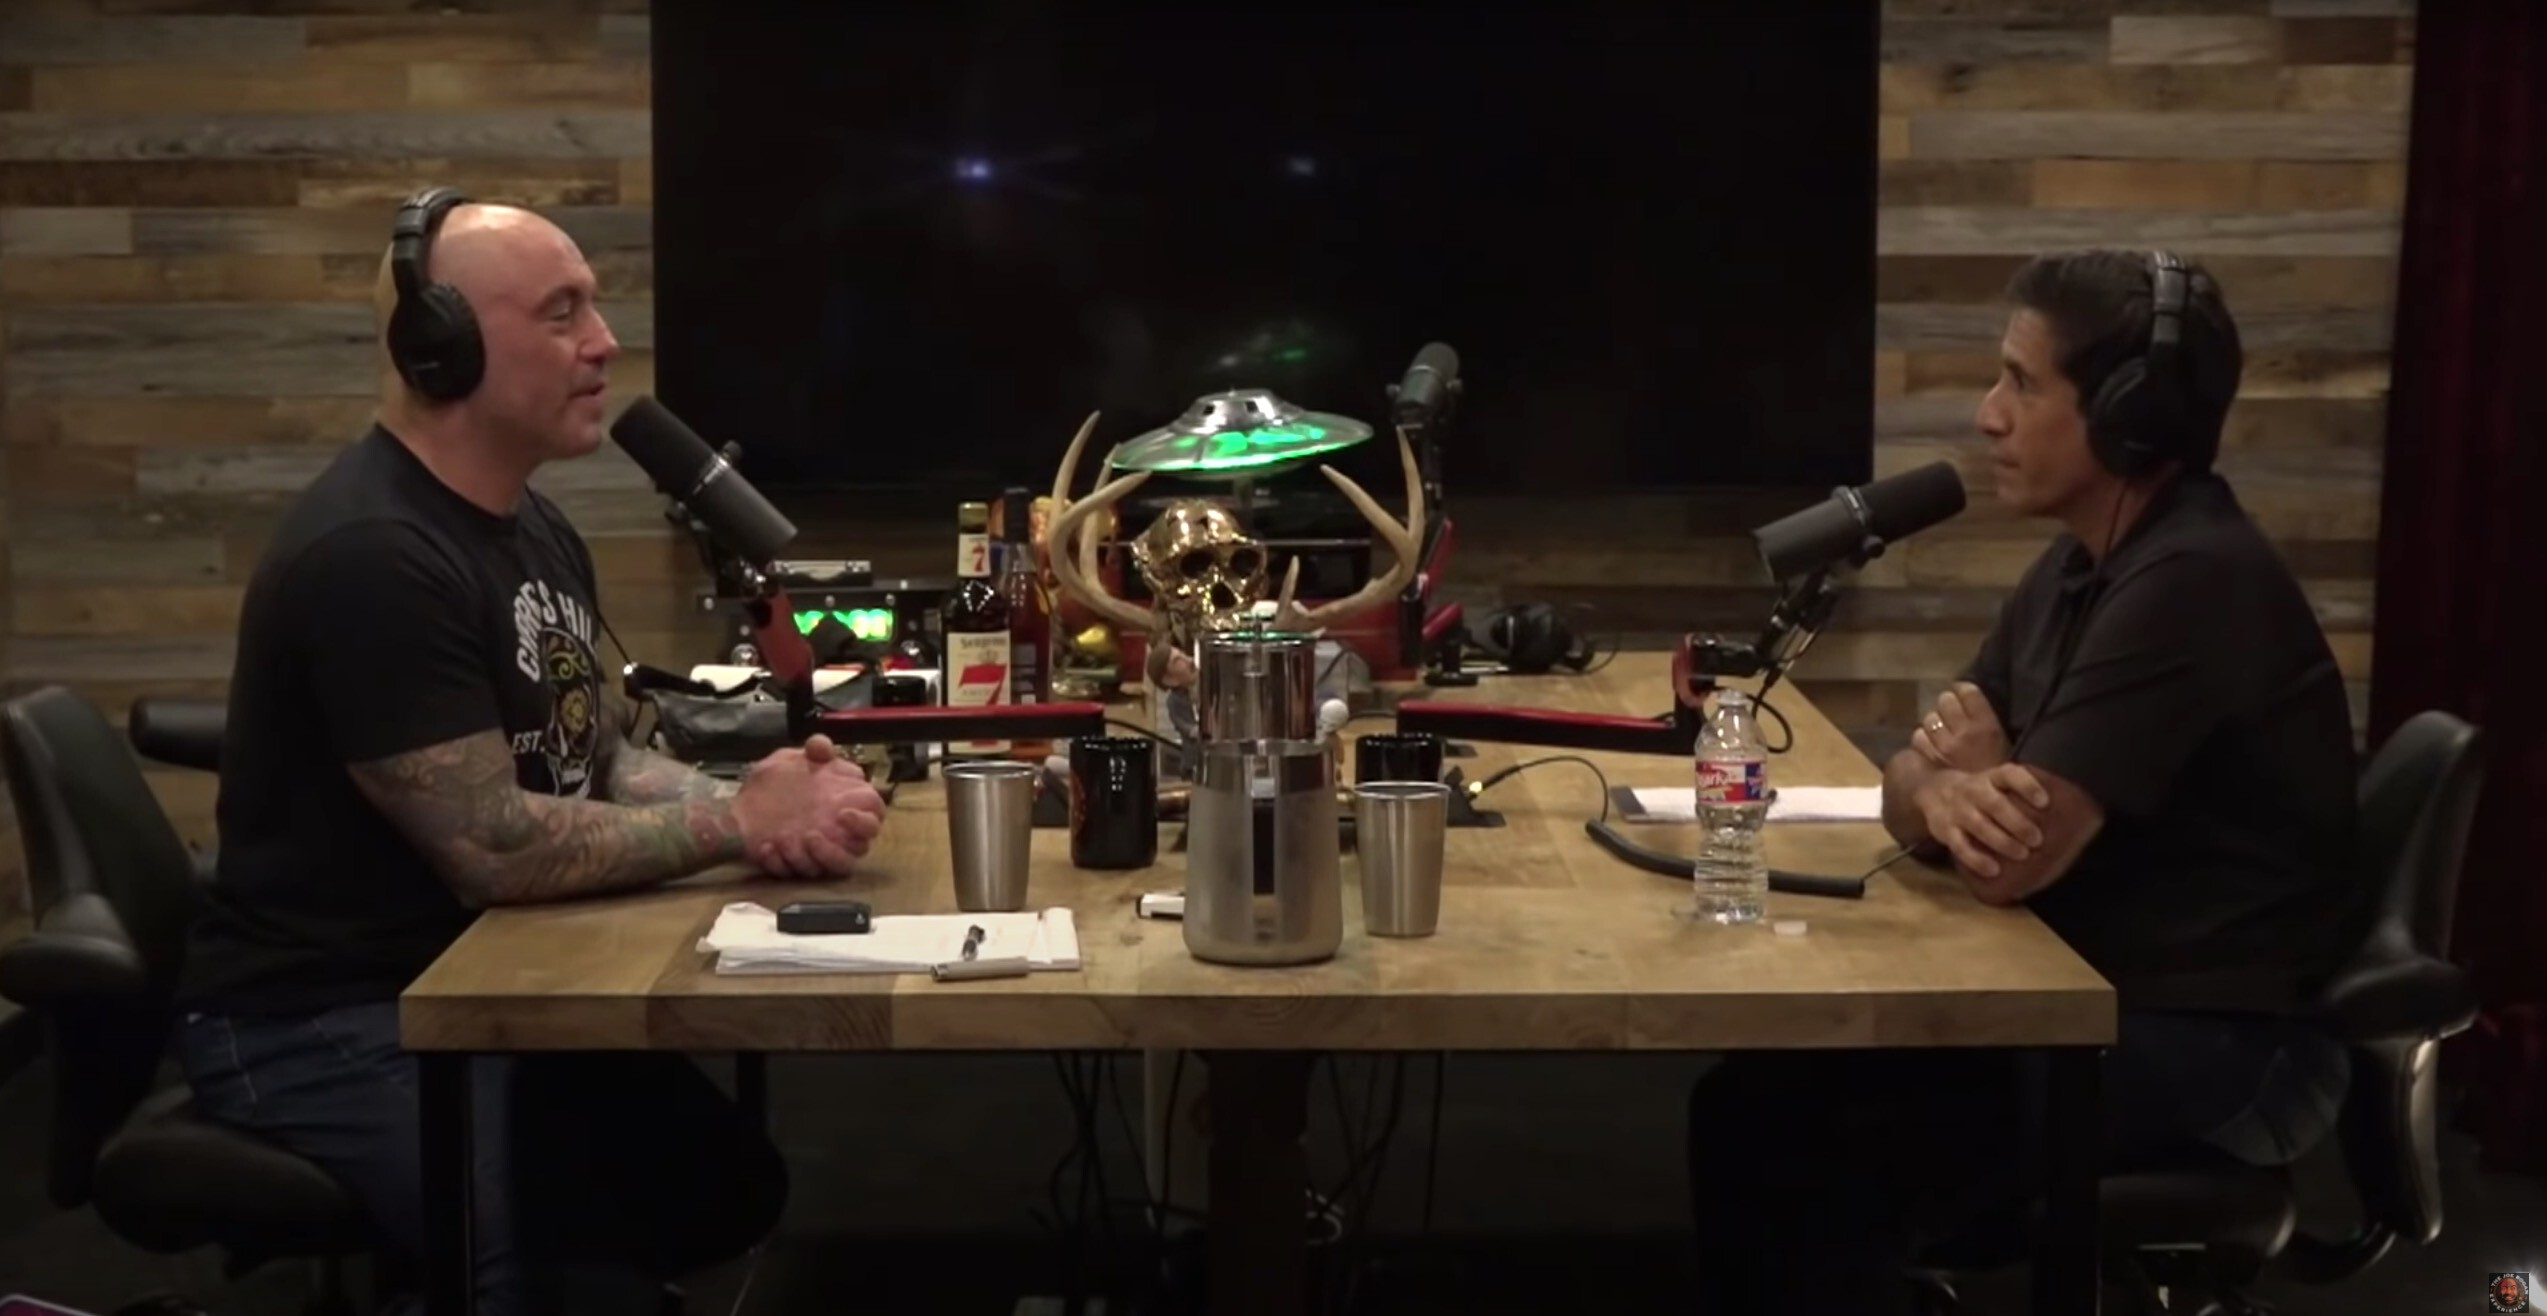 <i>From Joe Rogan Experience Podcast</i><br/>Dr. Sanjay Gupta sat down with Joe Rogan for three hours to speak with him about Covid-19 and vaccines on his podcast.